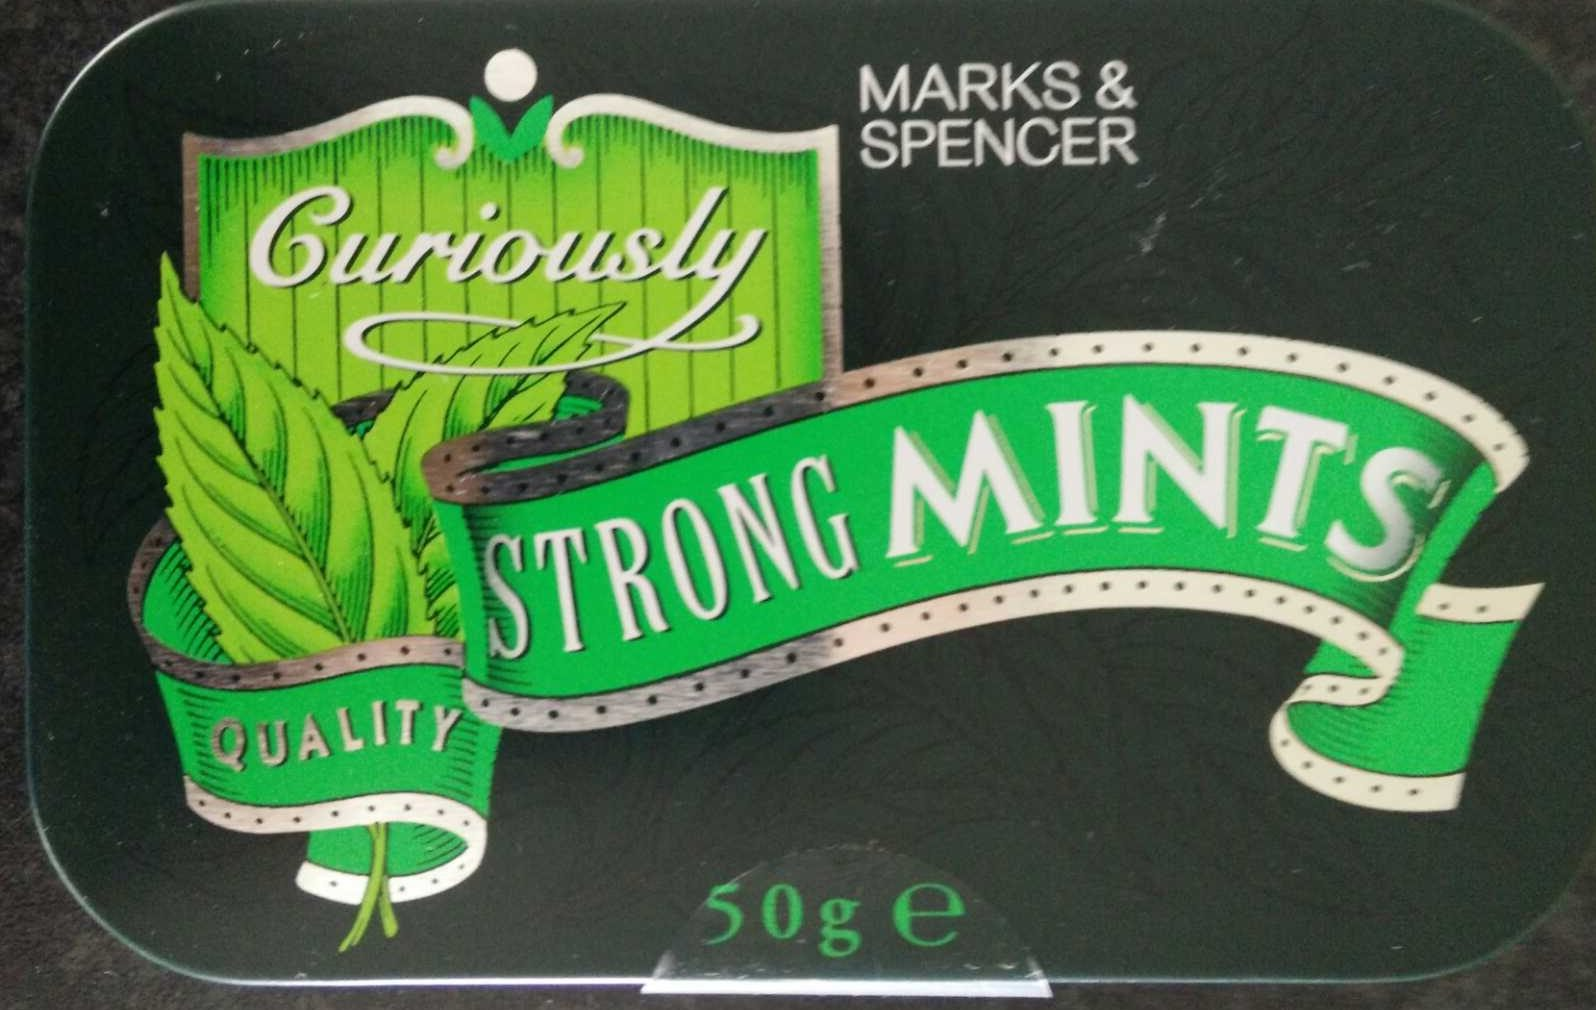 Curiously Strong Mints - Product - en